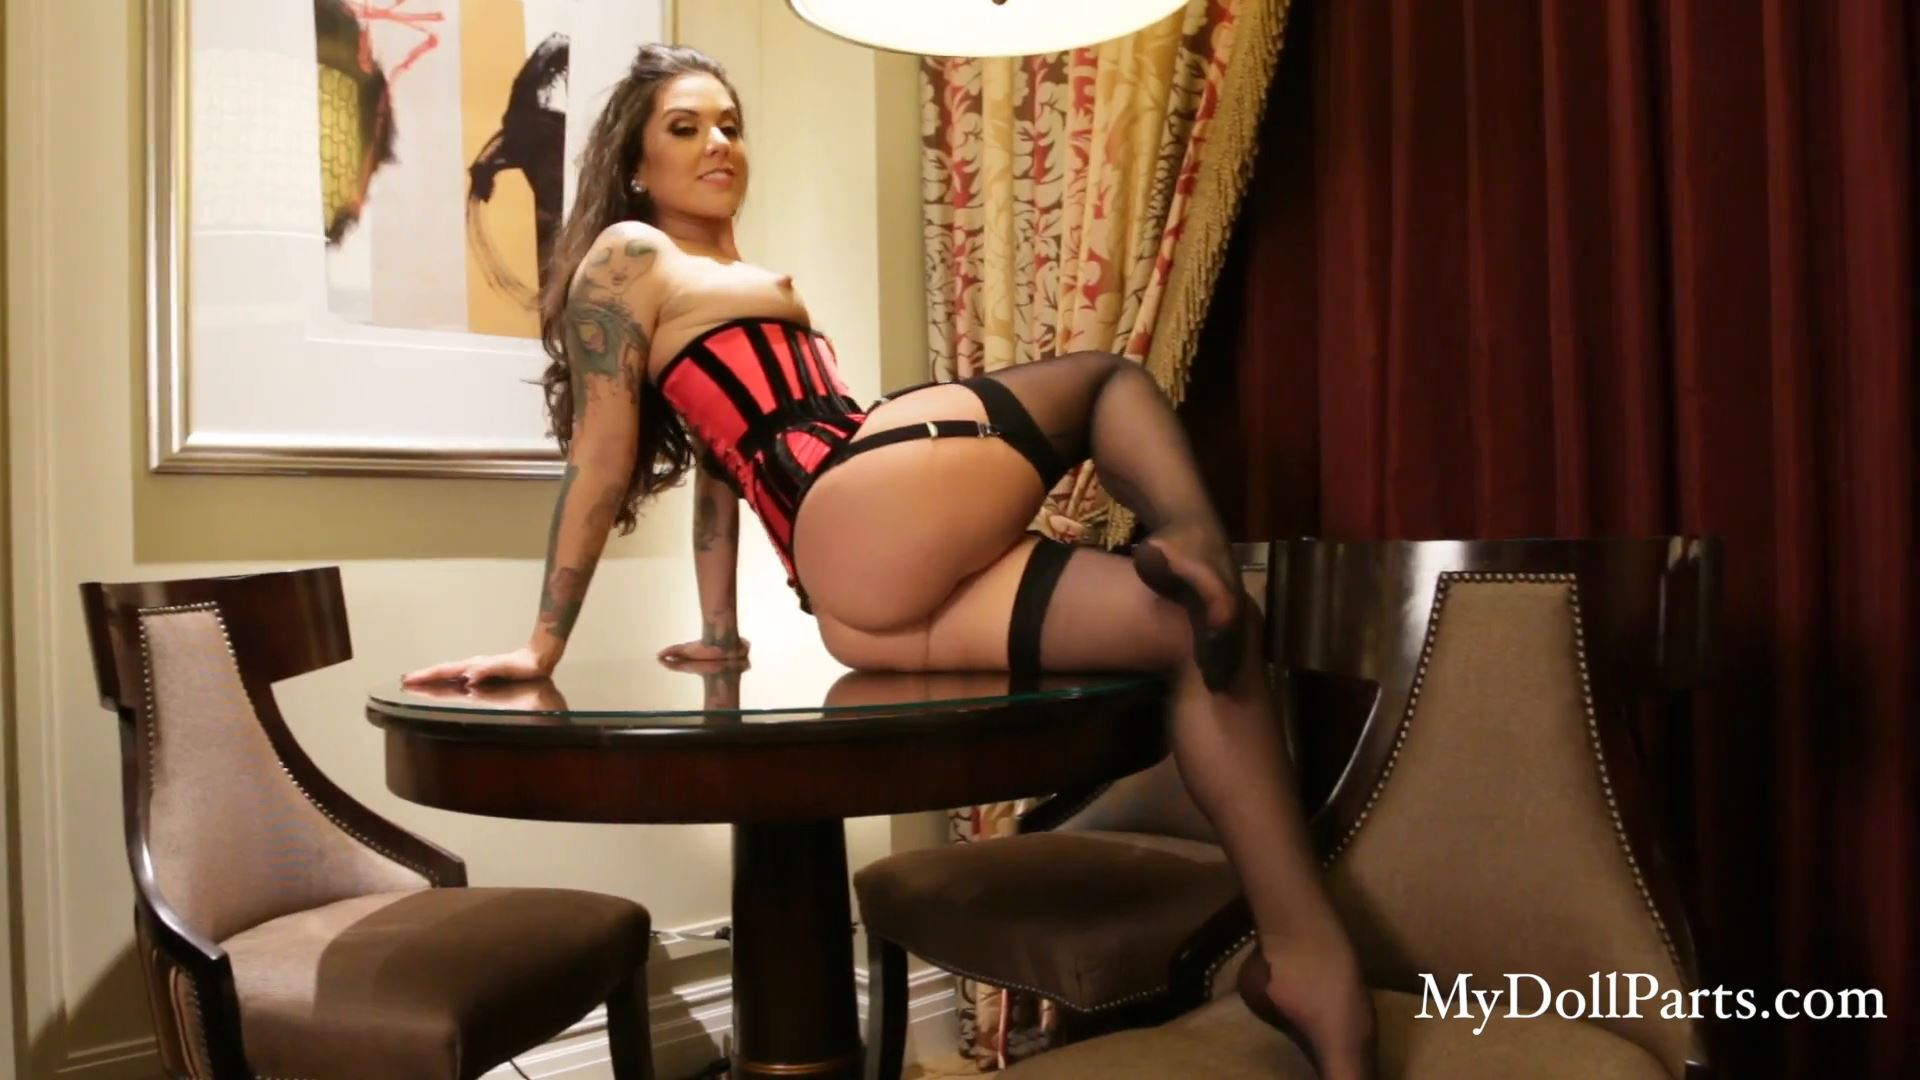 Kayla Jane In Scene: Attention Whore - MYDOLLPARTS - FULL HD/1080p/MP4